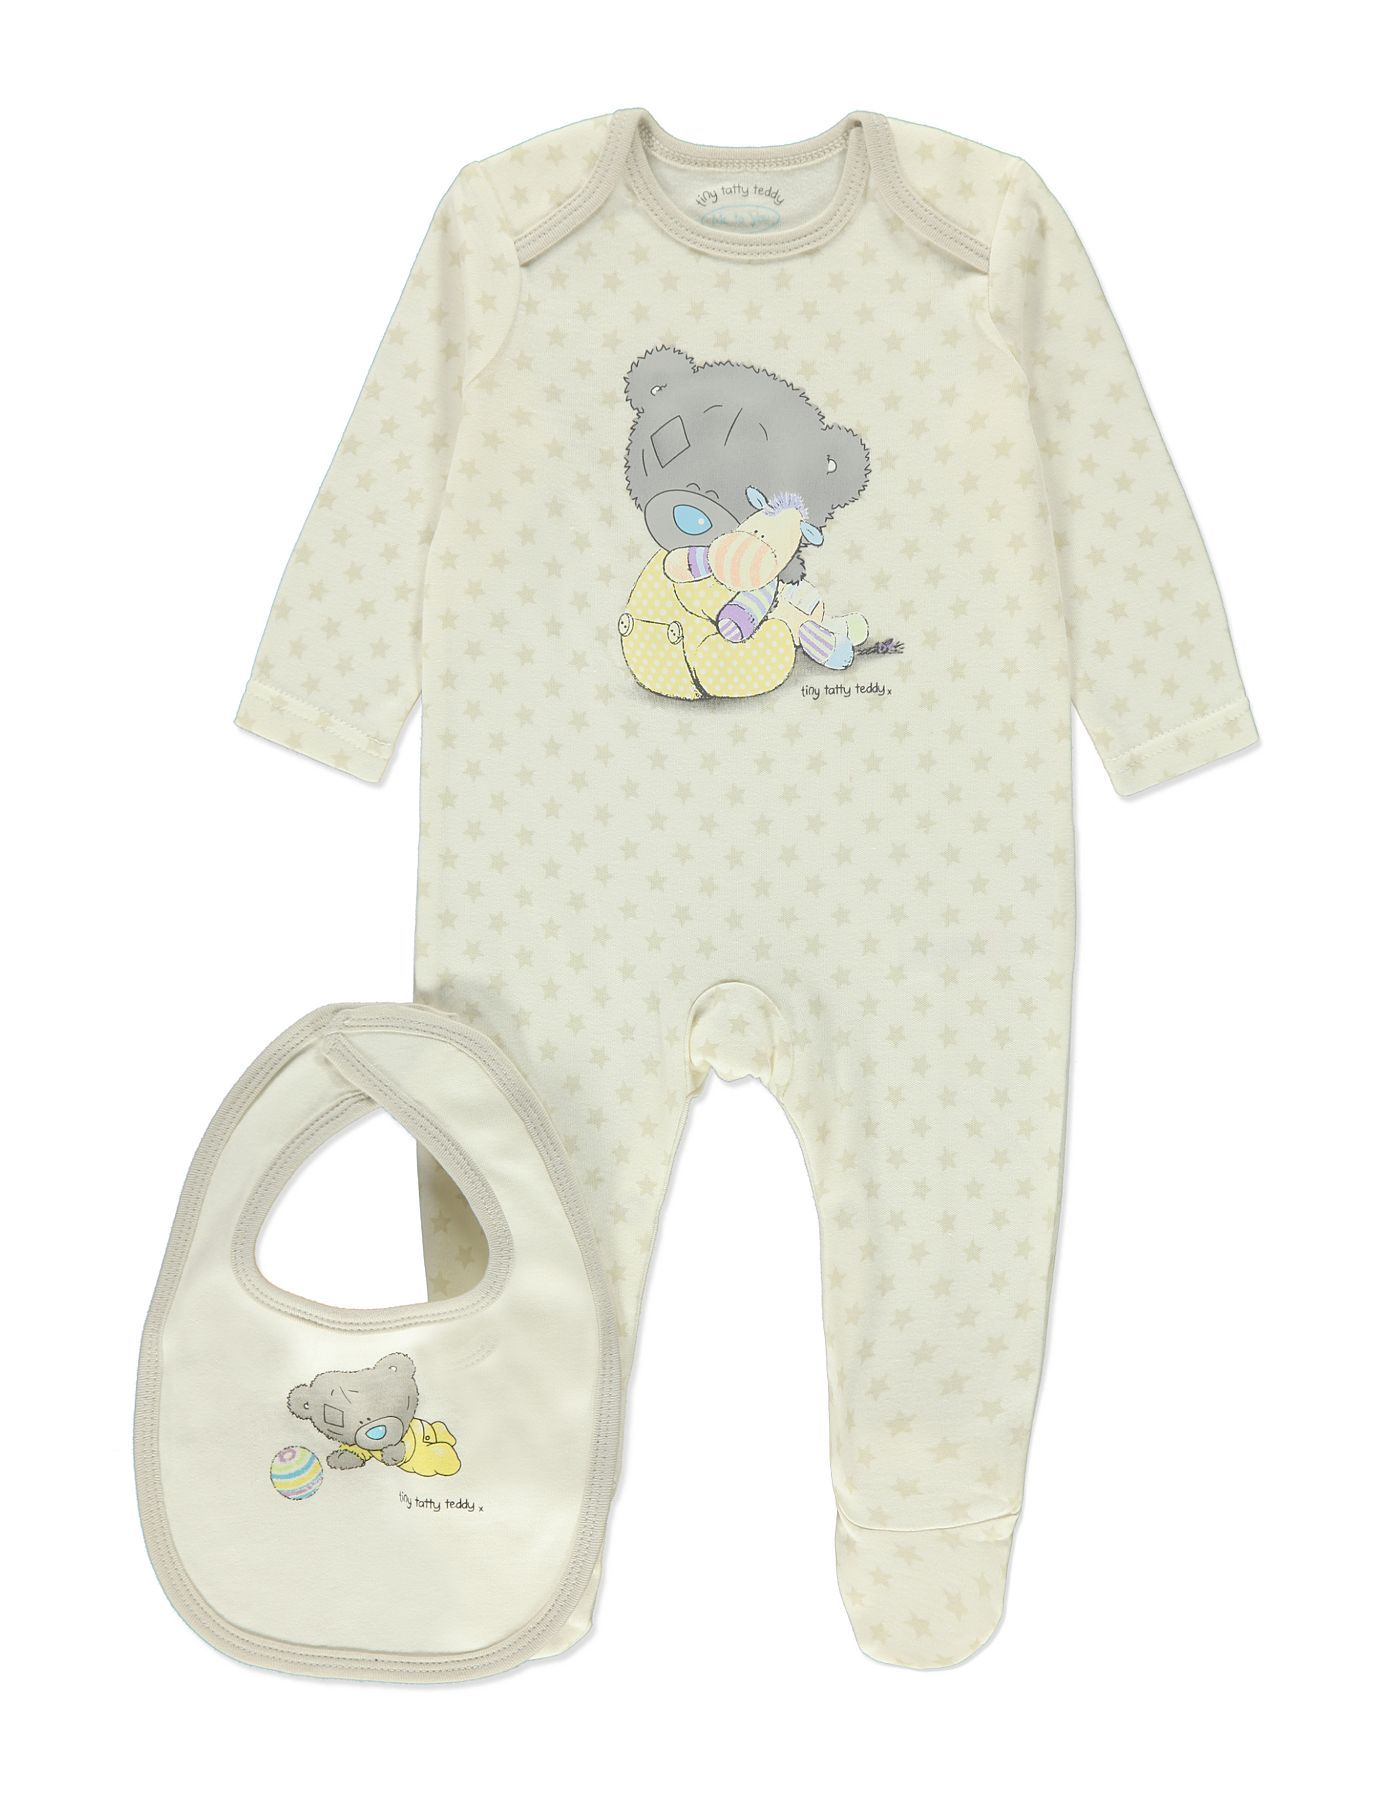 Uni Star Tiny Tatty Teddy Sleepsuit and Bib Set Baby